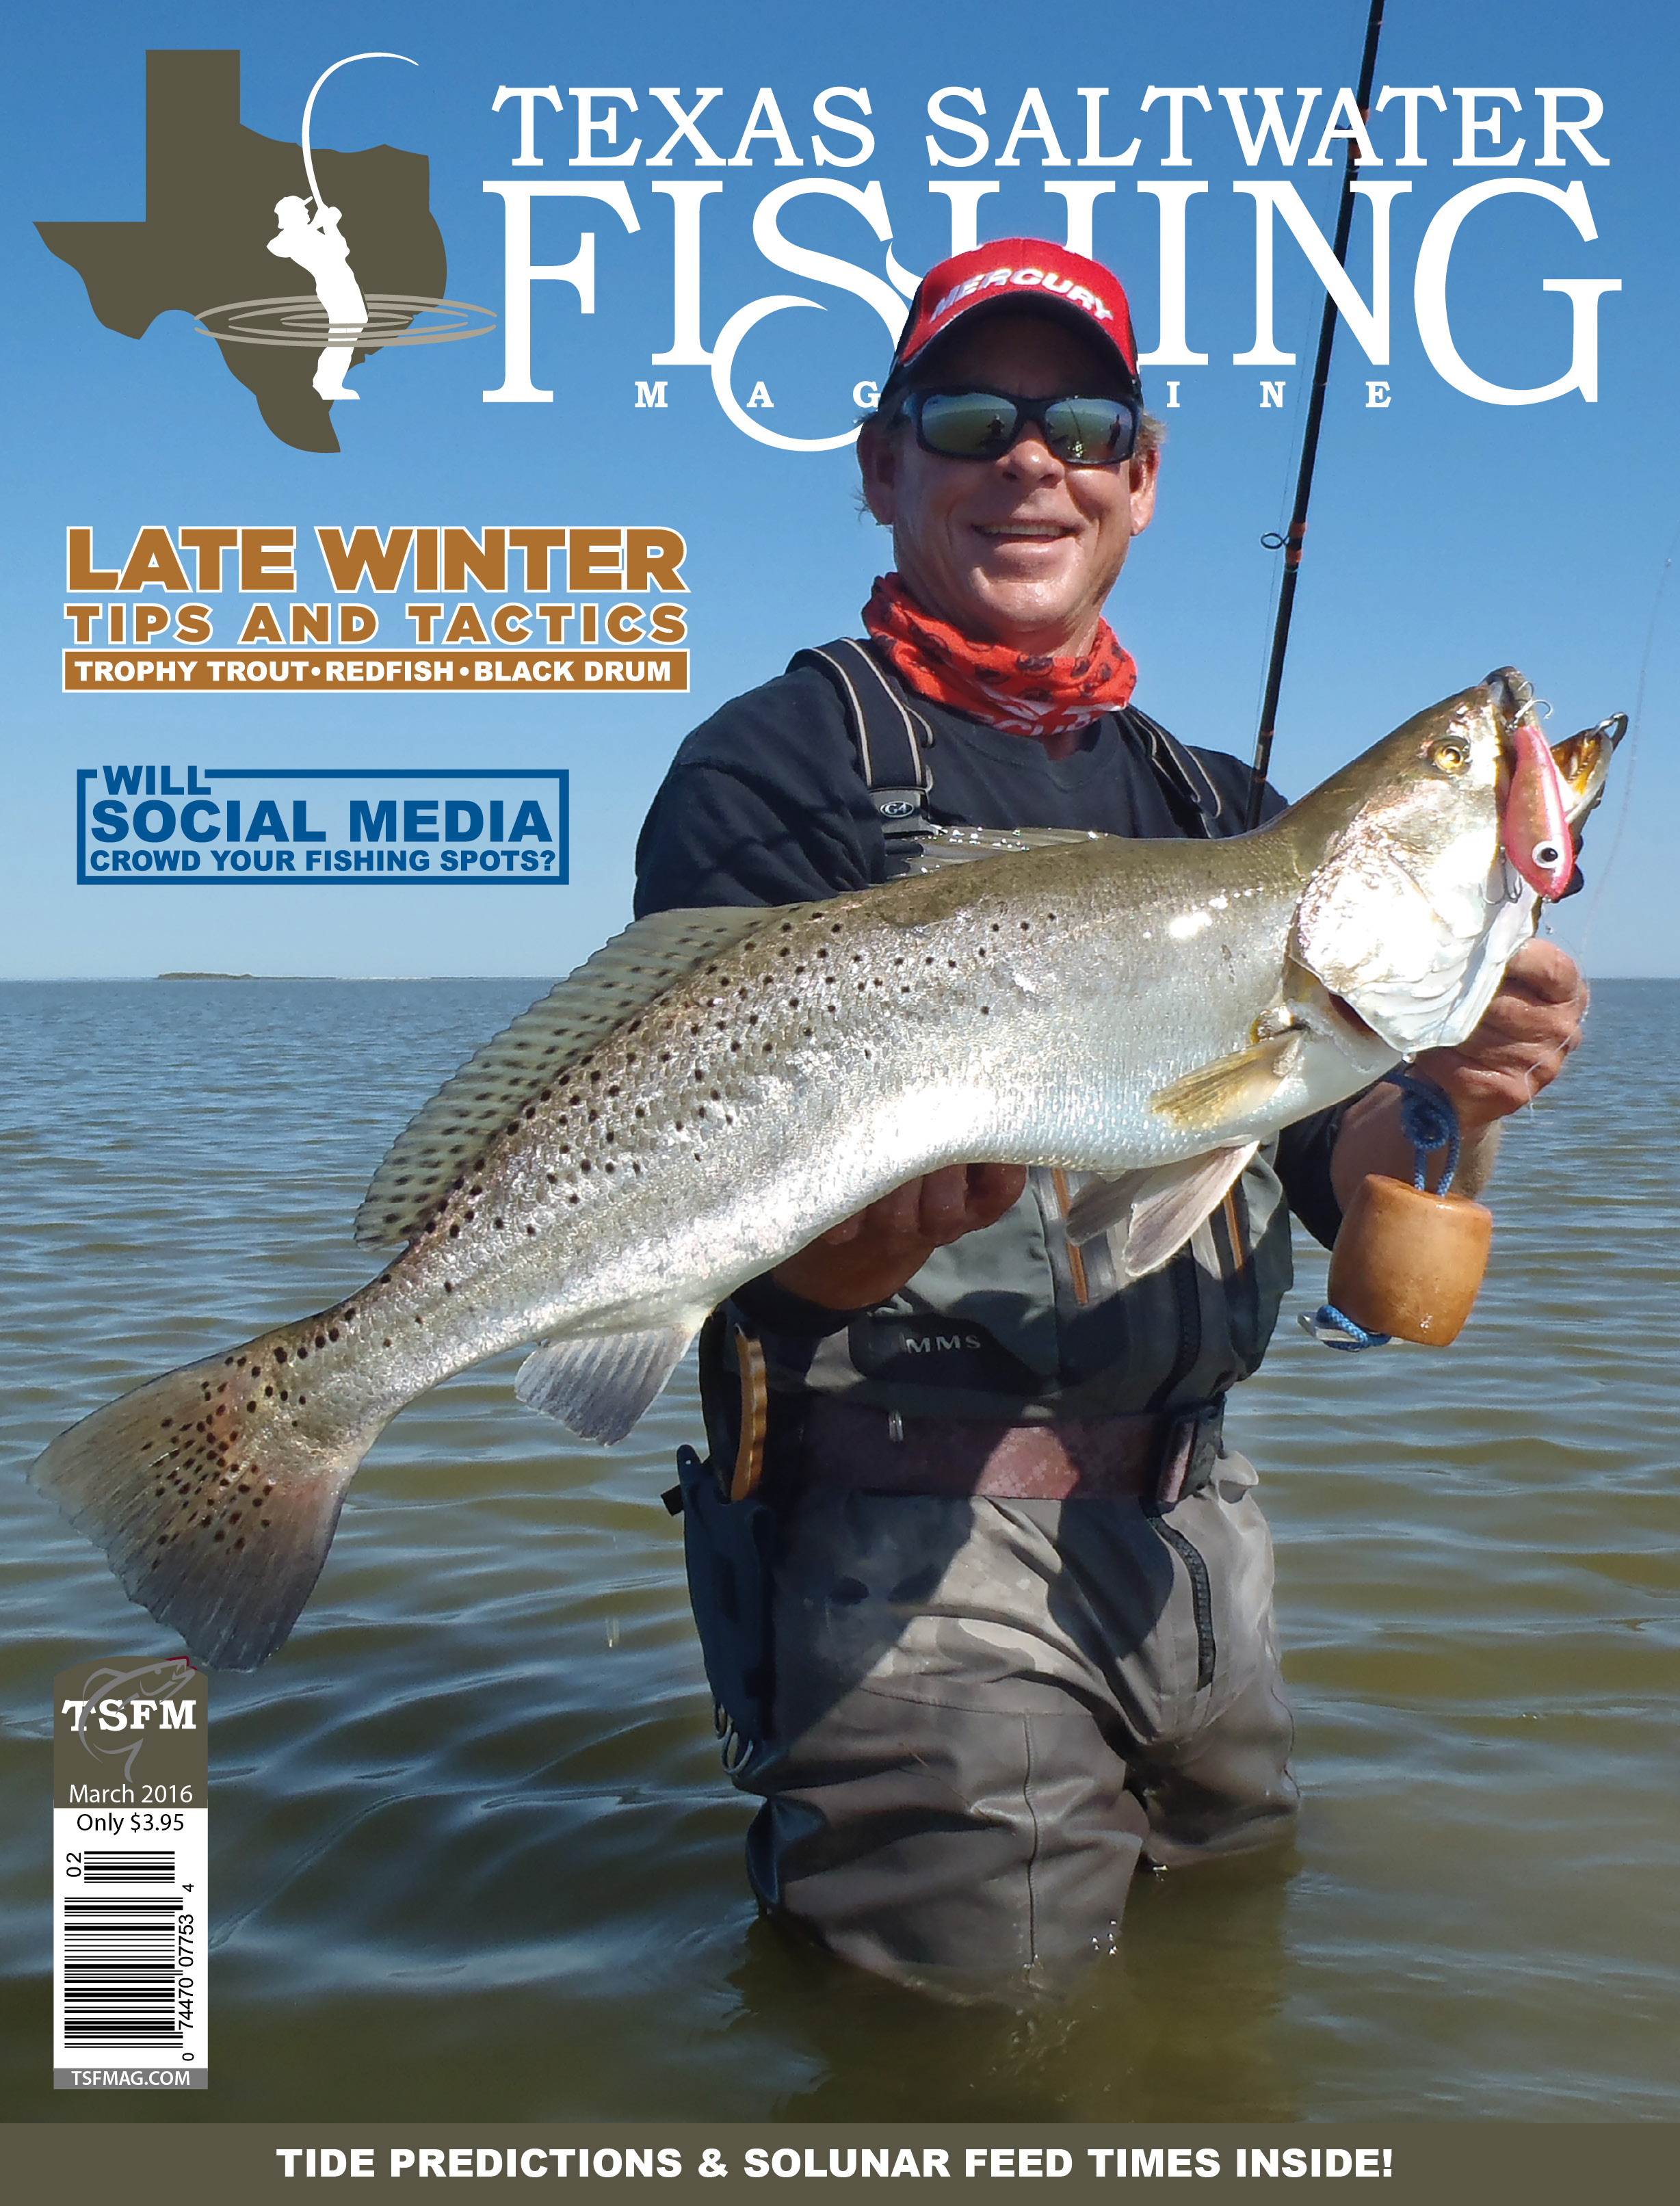 Texas saltwater fishing magazine march 2016 for Texas saltwater fishing magazine